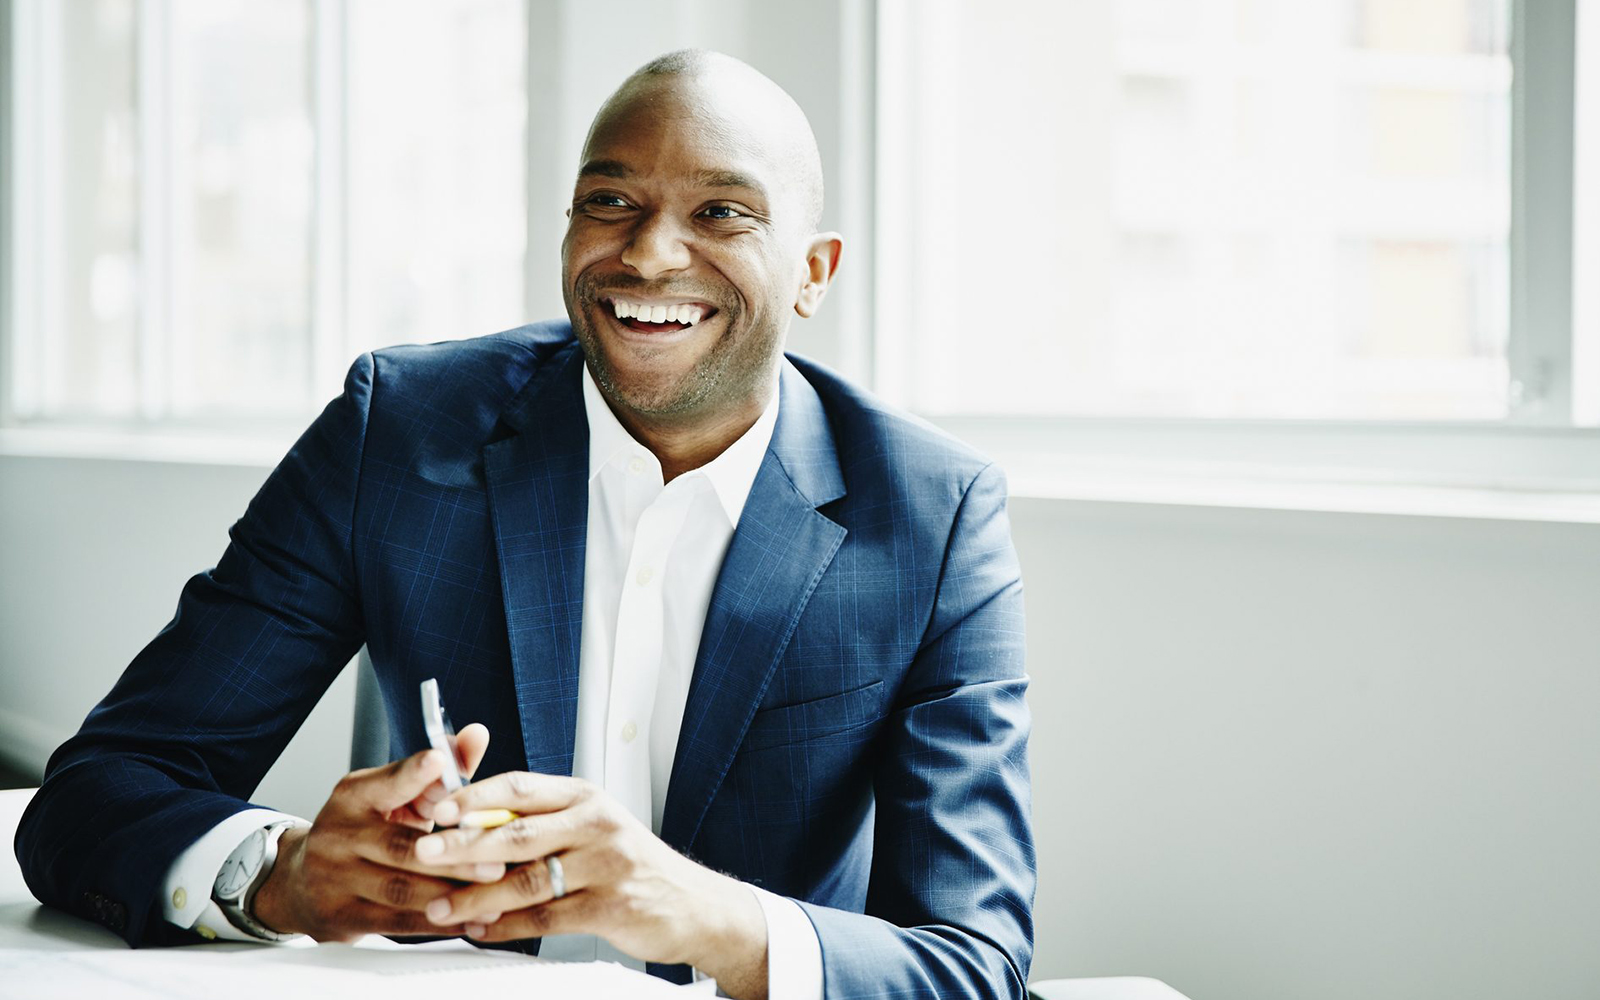 Stock photo of a man of color in a business suit, smiling.